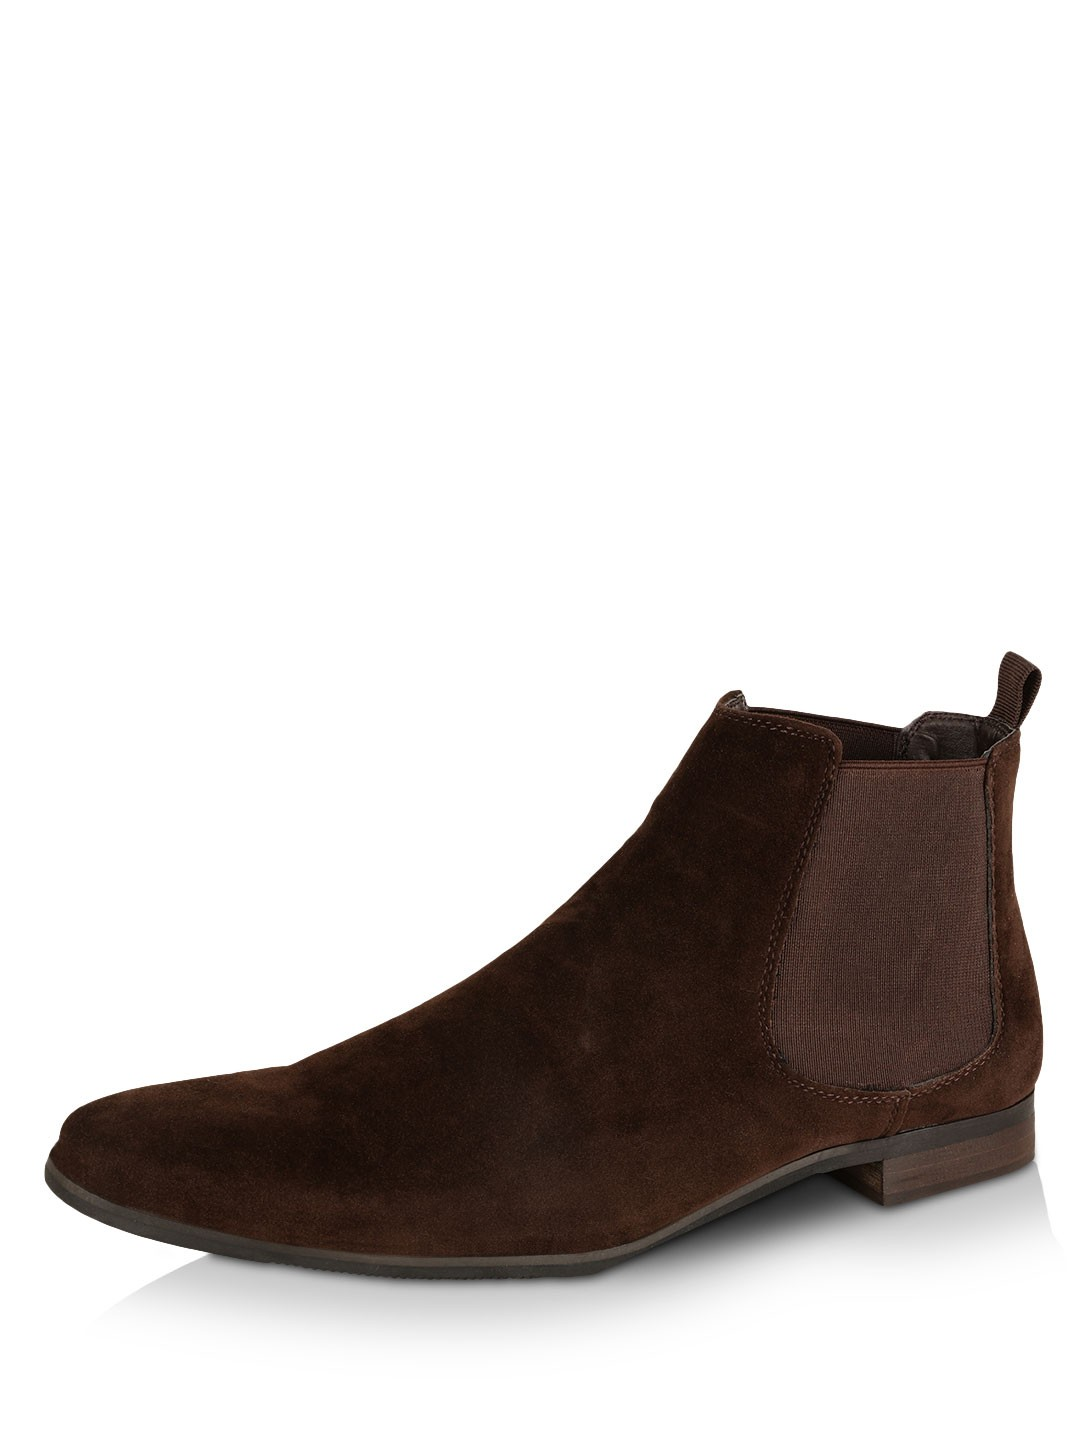 Buy New Look Shoes Online India